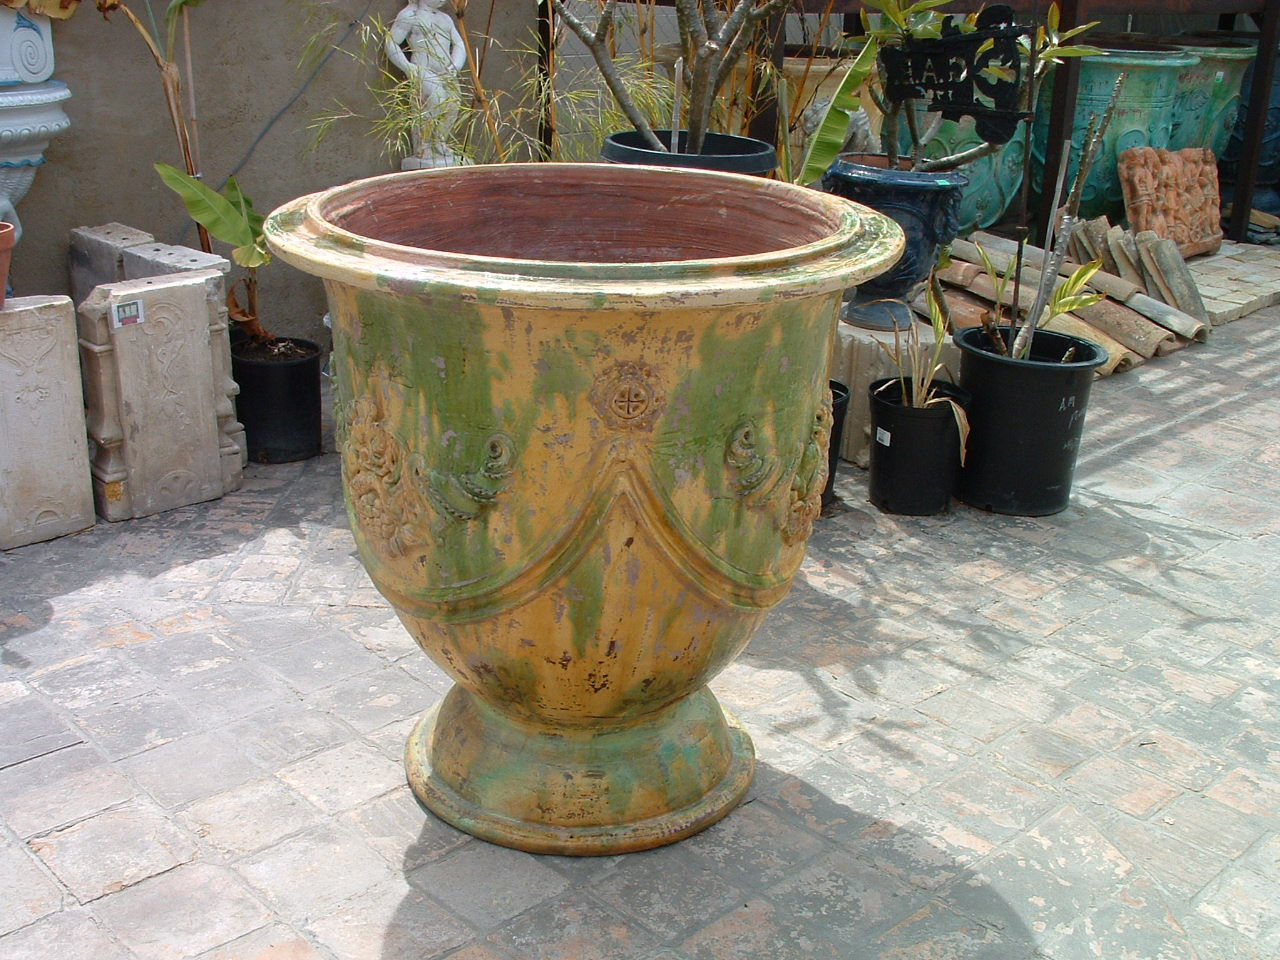 Antique European Garden Pot